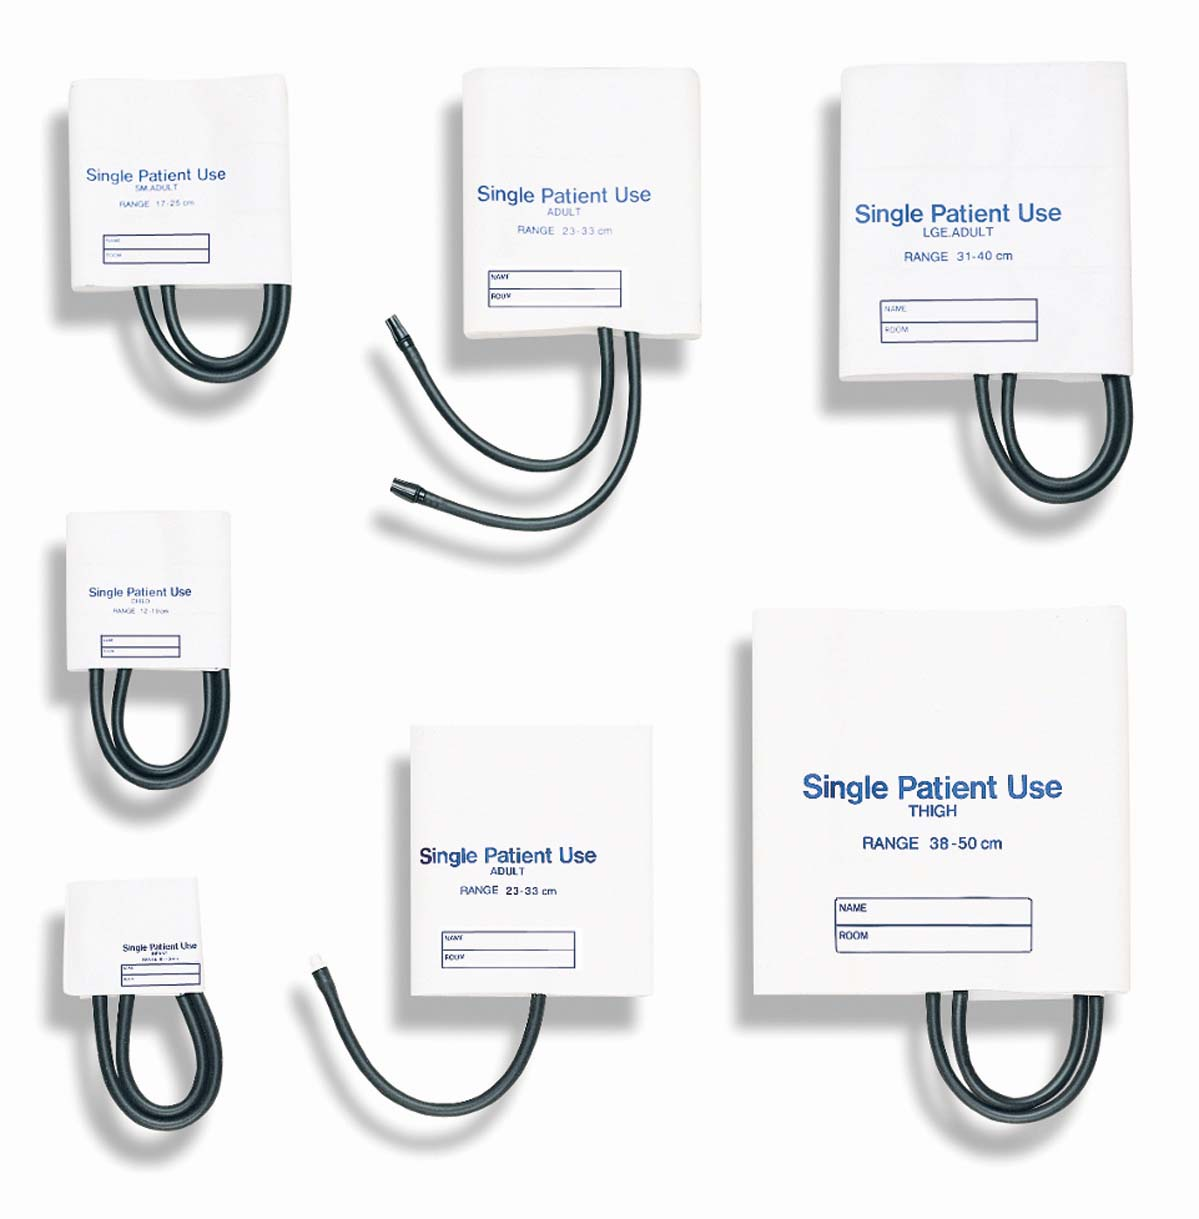 single-patient-use-two-tube-inflation-system-thigh-white-5-box-06-214-197-lr-3.jpg